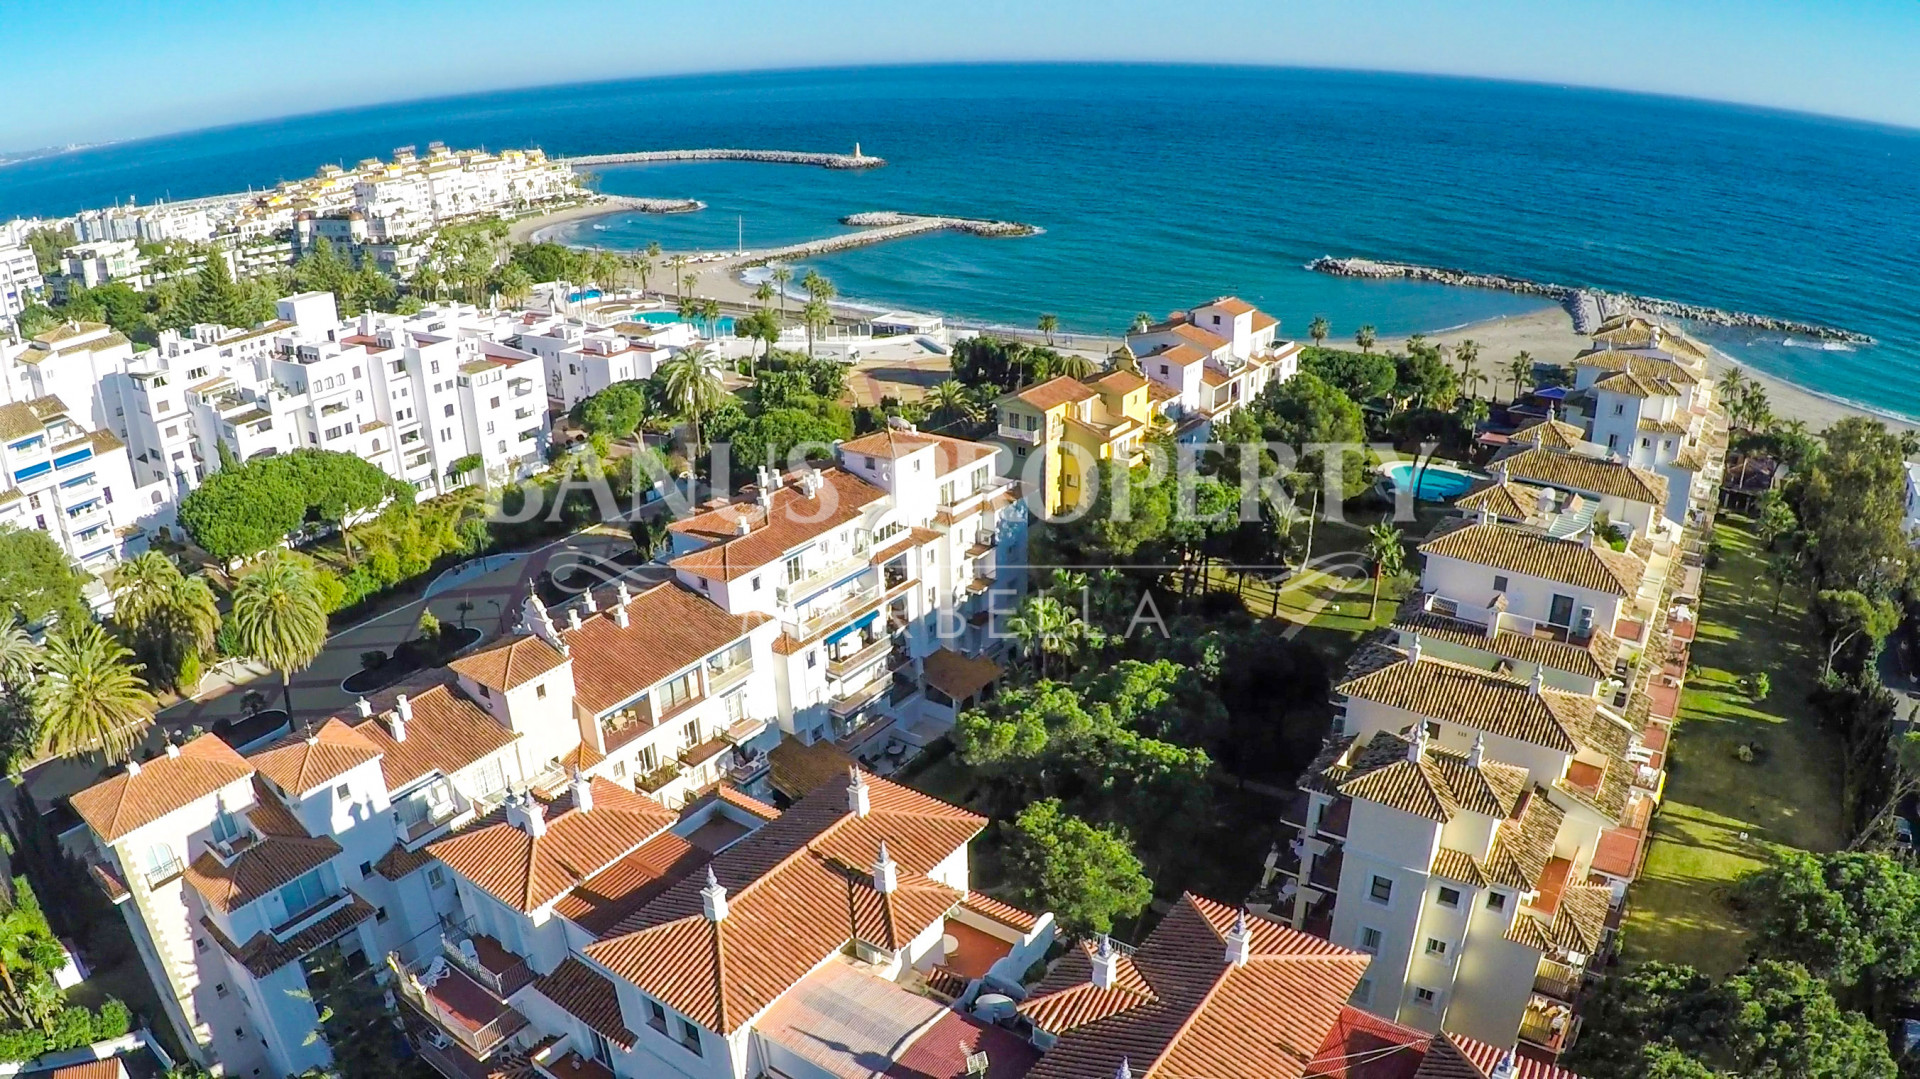 2-bedroom ground floor apartment in Andalucía del Mar, Puerto Banús